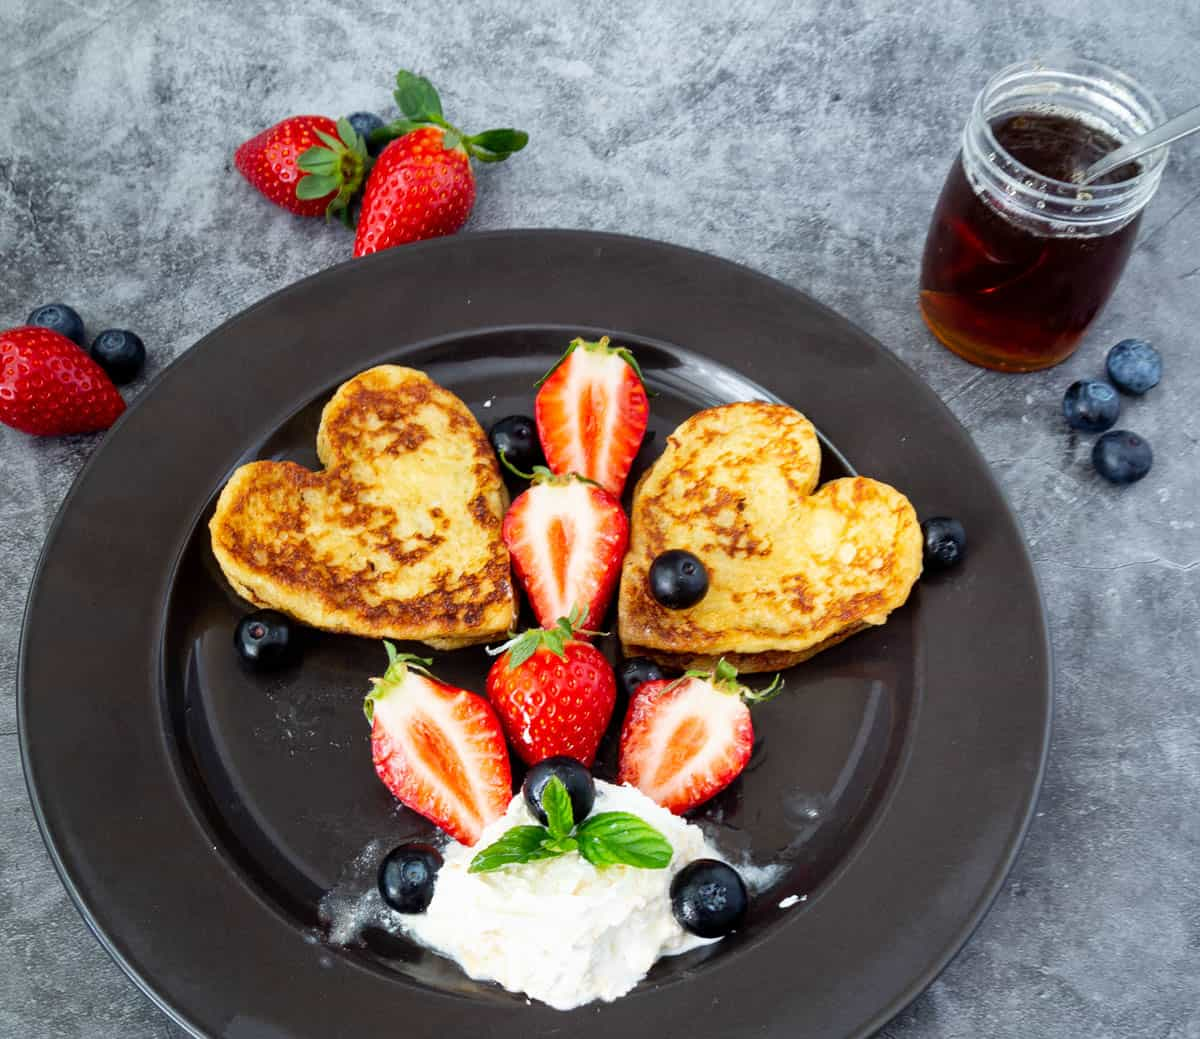 Heart shaped French toast on a black plate